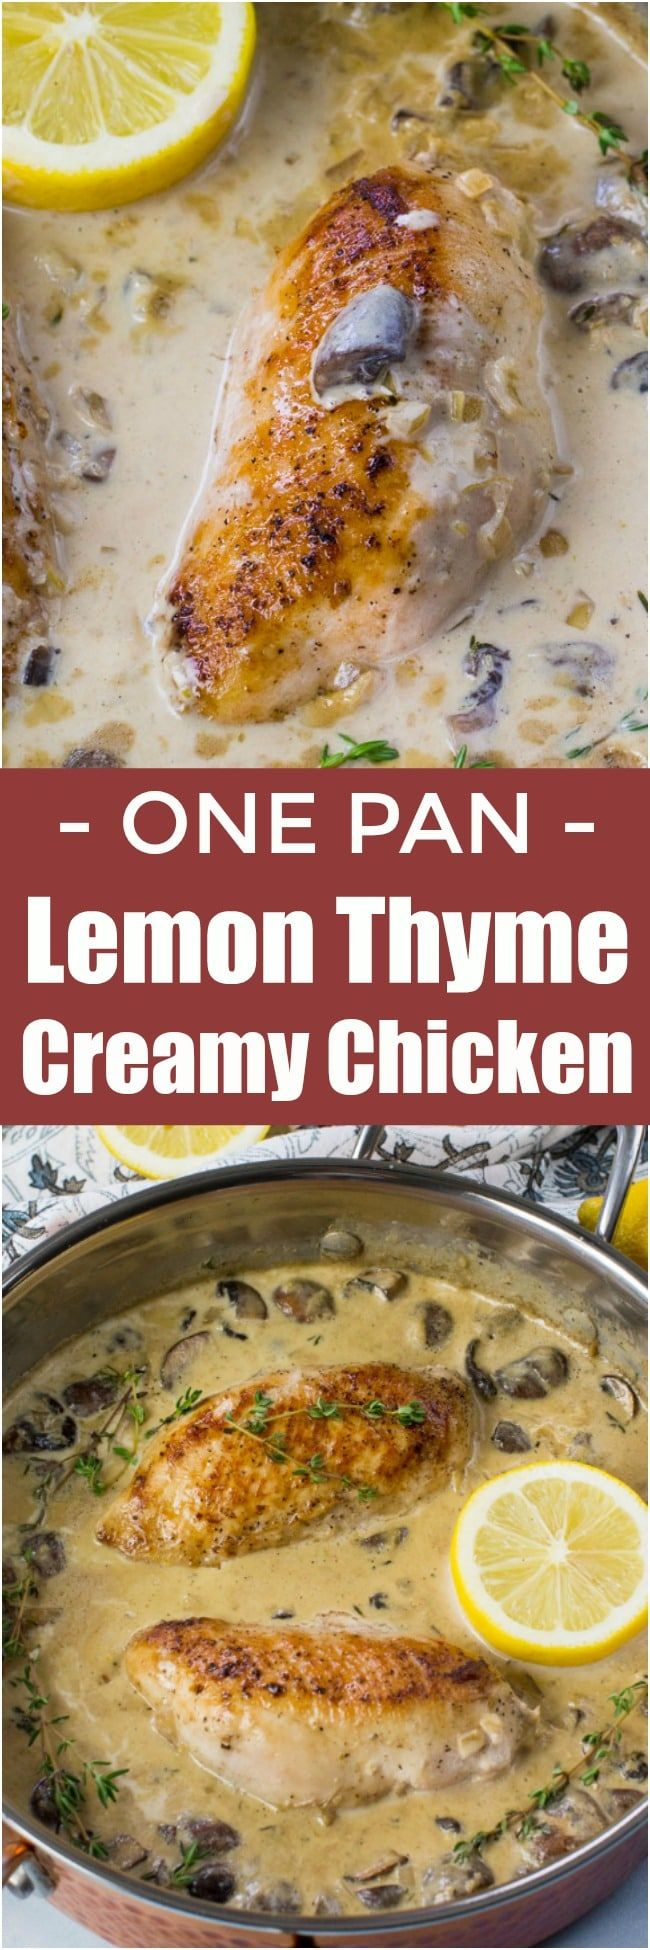 One Pan Creamy Lemon Thyme Chicken is made with white wine, lemon zest, cream, mushrooms and thyme. Ready in just 30 minutes. #chicken #dinner #onepan